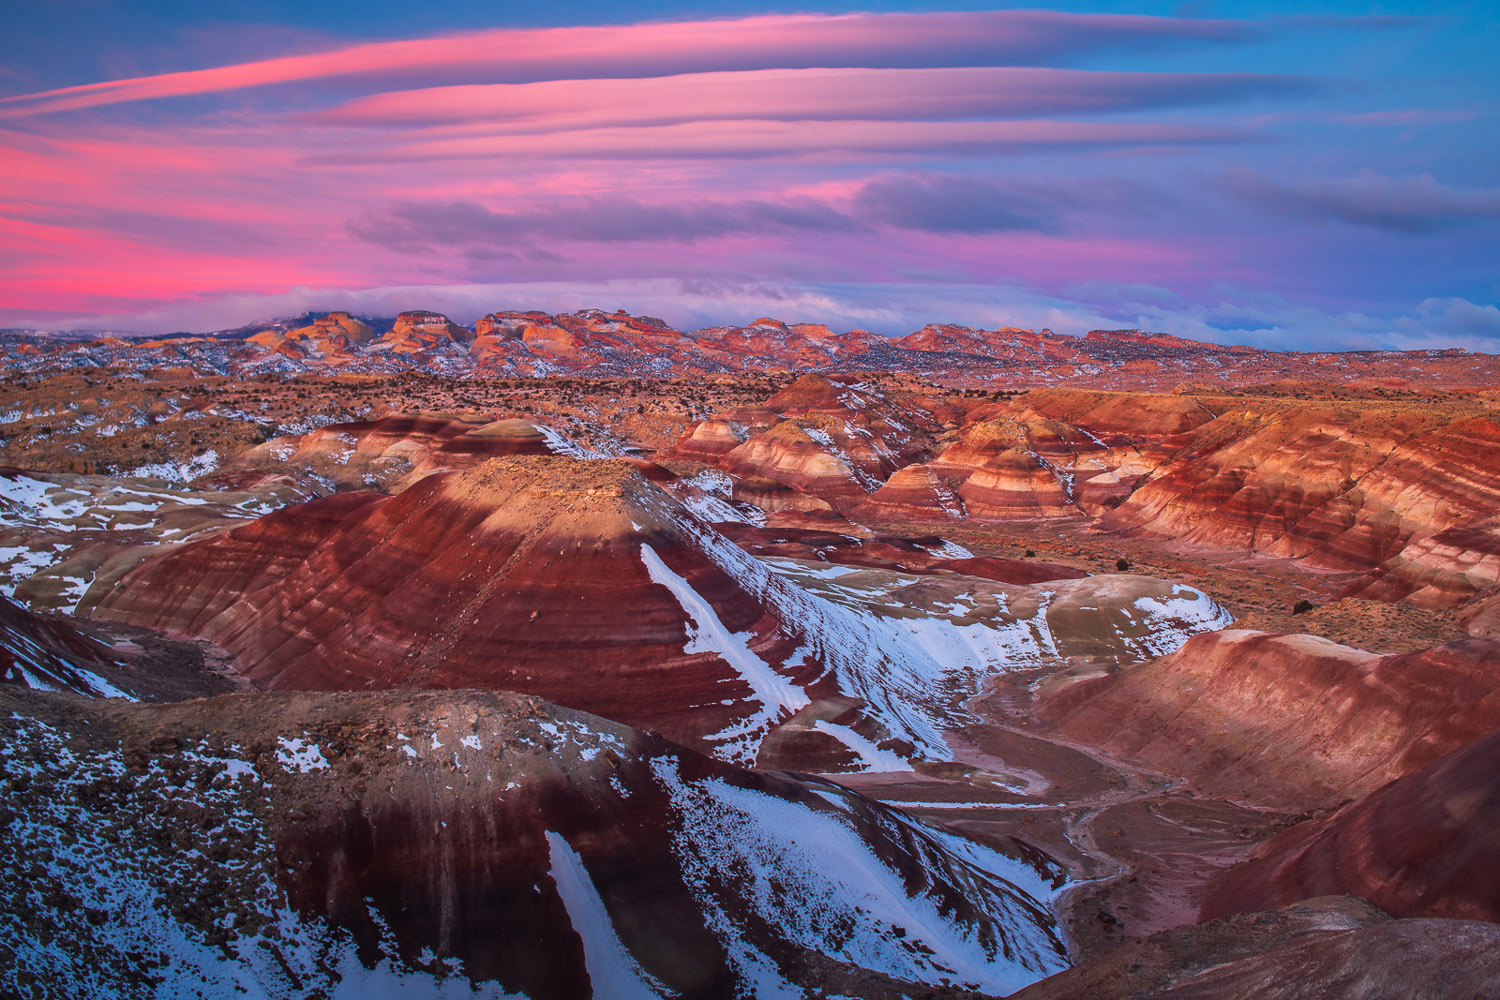 Bentonite Badlands before the Capitol Domes of Capitol Reef National Park at sunrise.